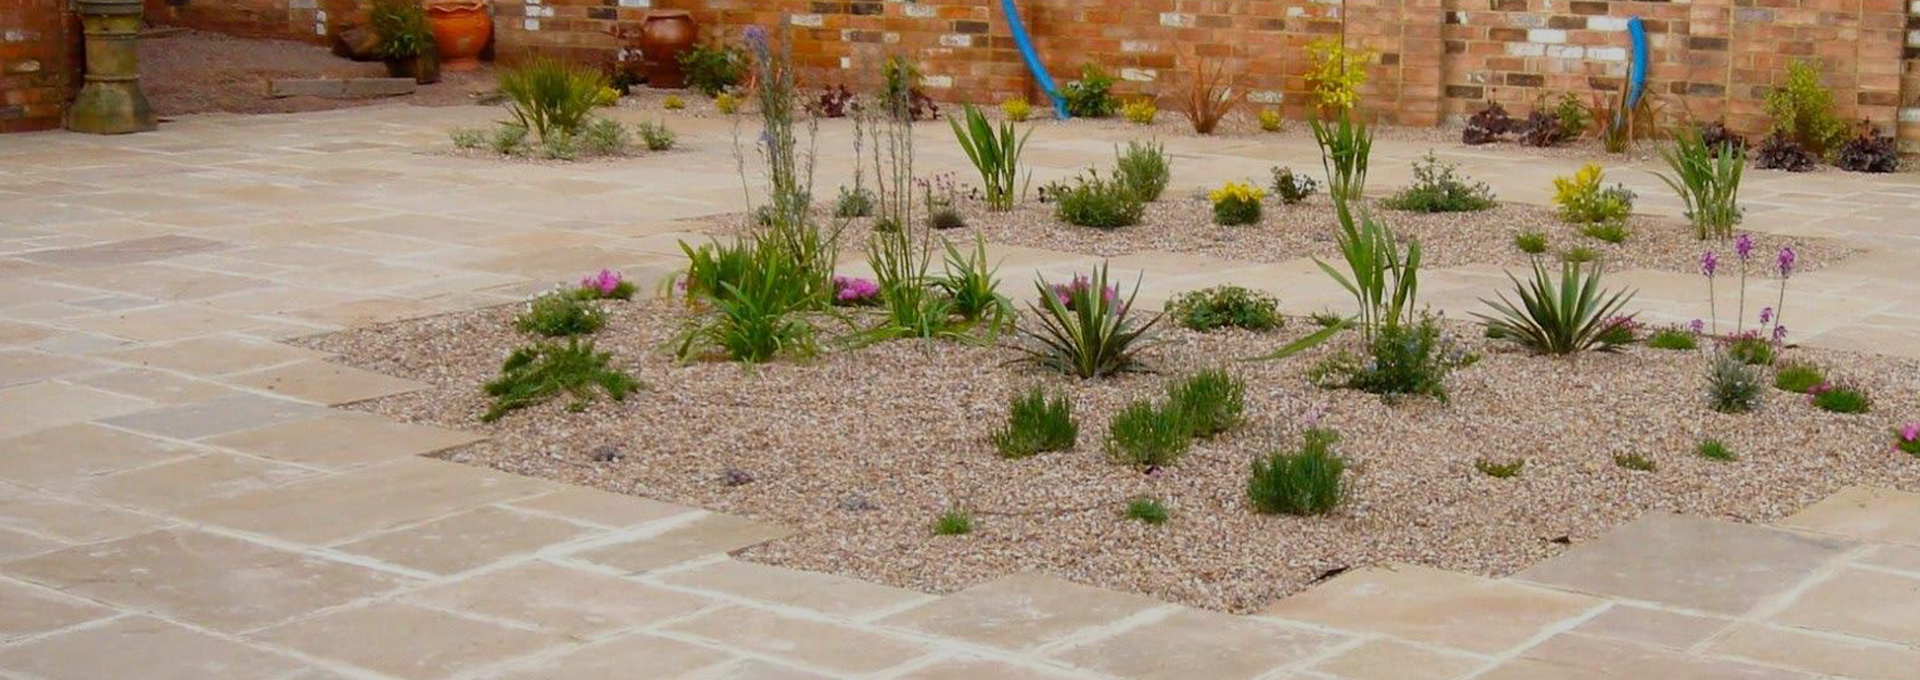 Paved patio with small plant islands in the middle of paving.